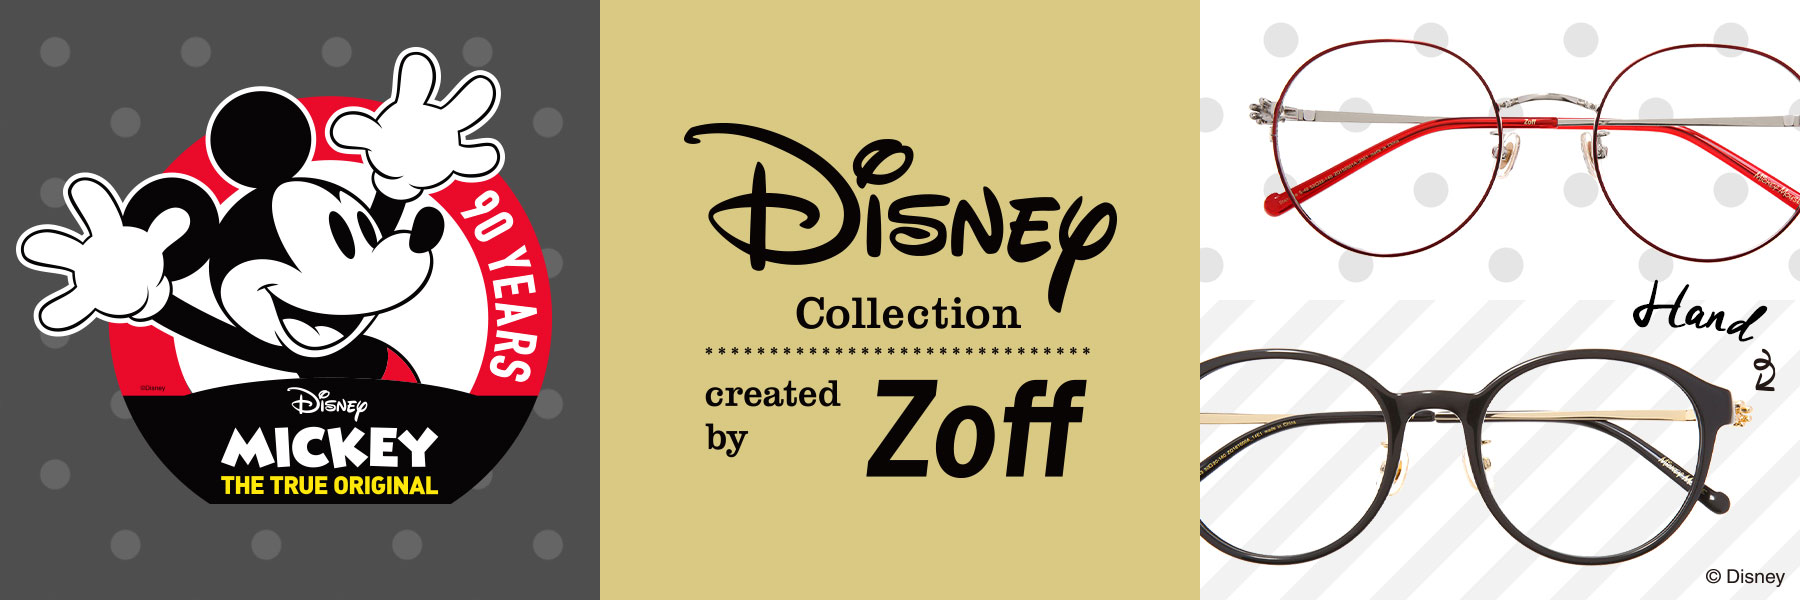 DISNEY Collection created by Zoff ©DISNEY.